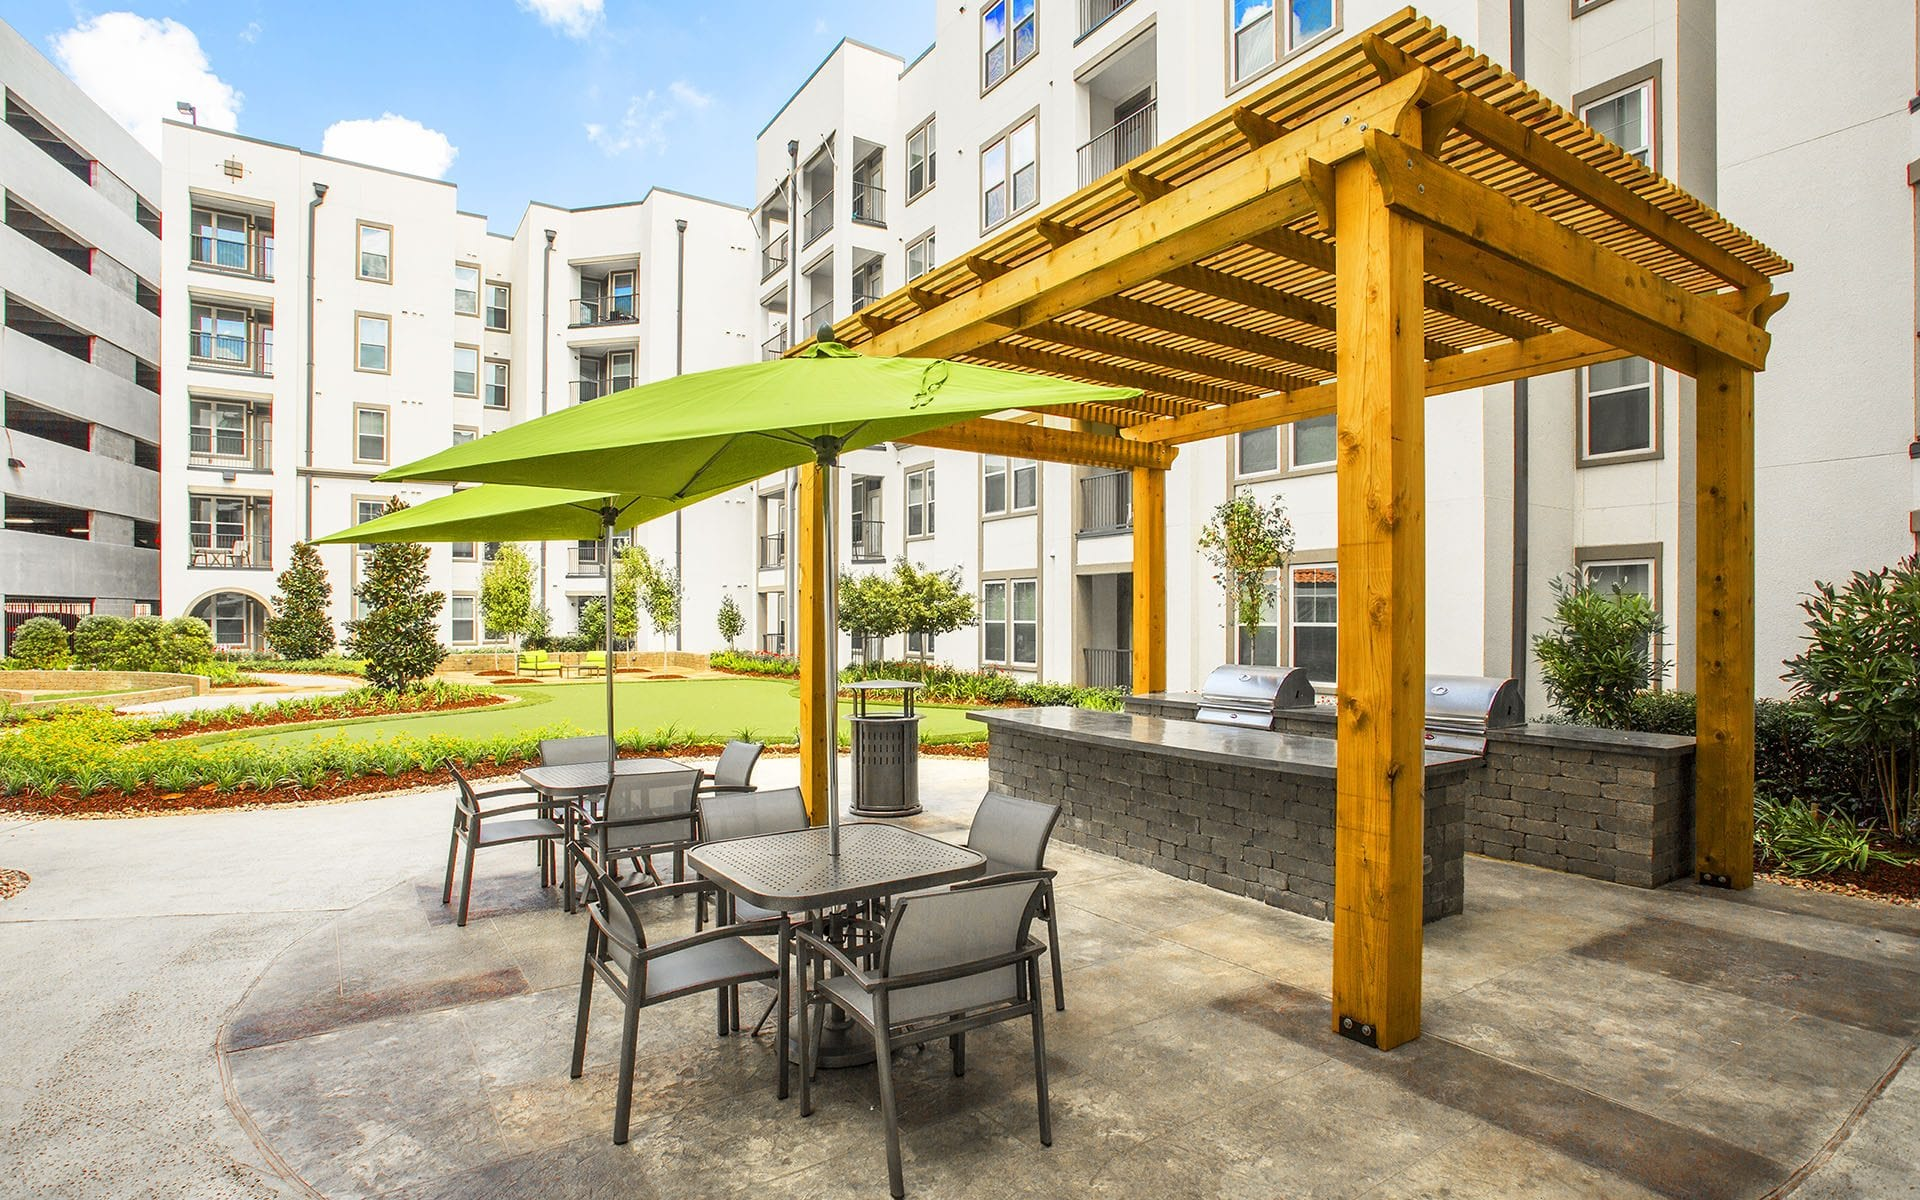 Green Courtyard - Lark Baton Rouge